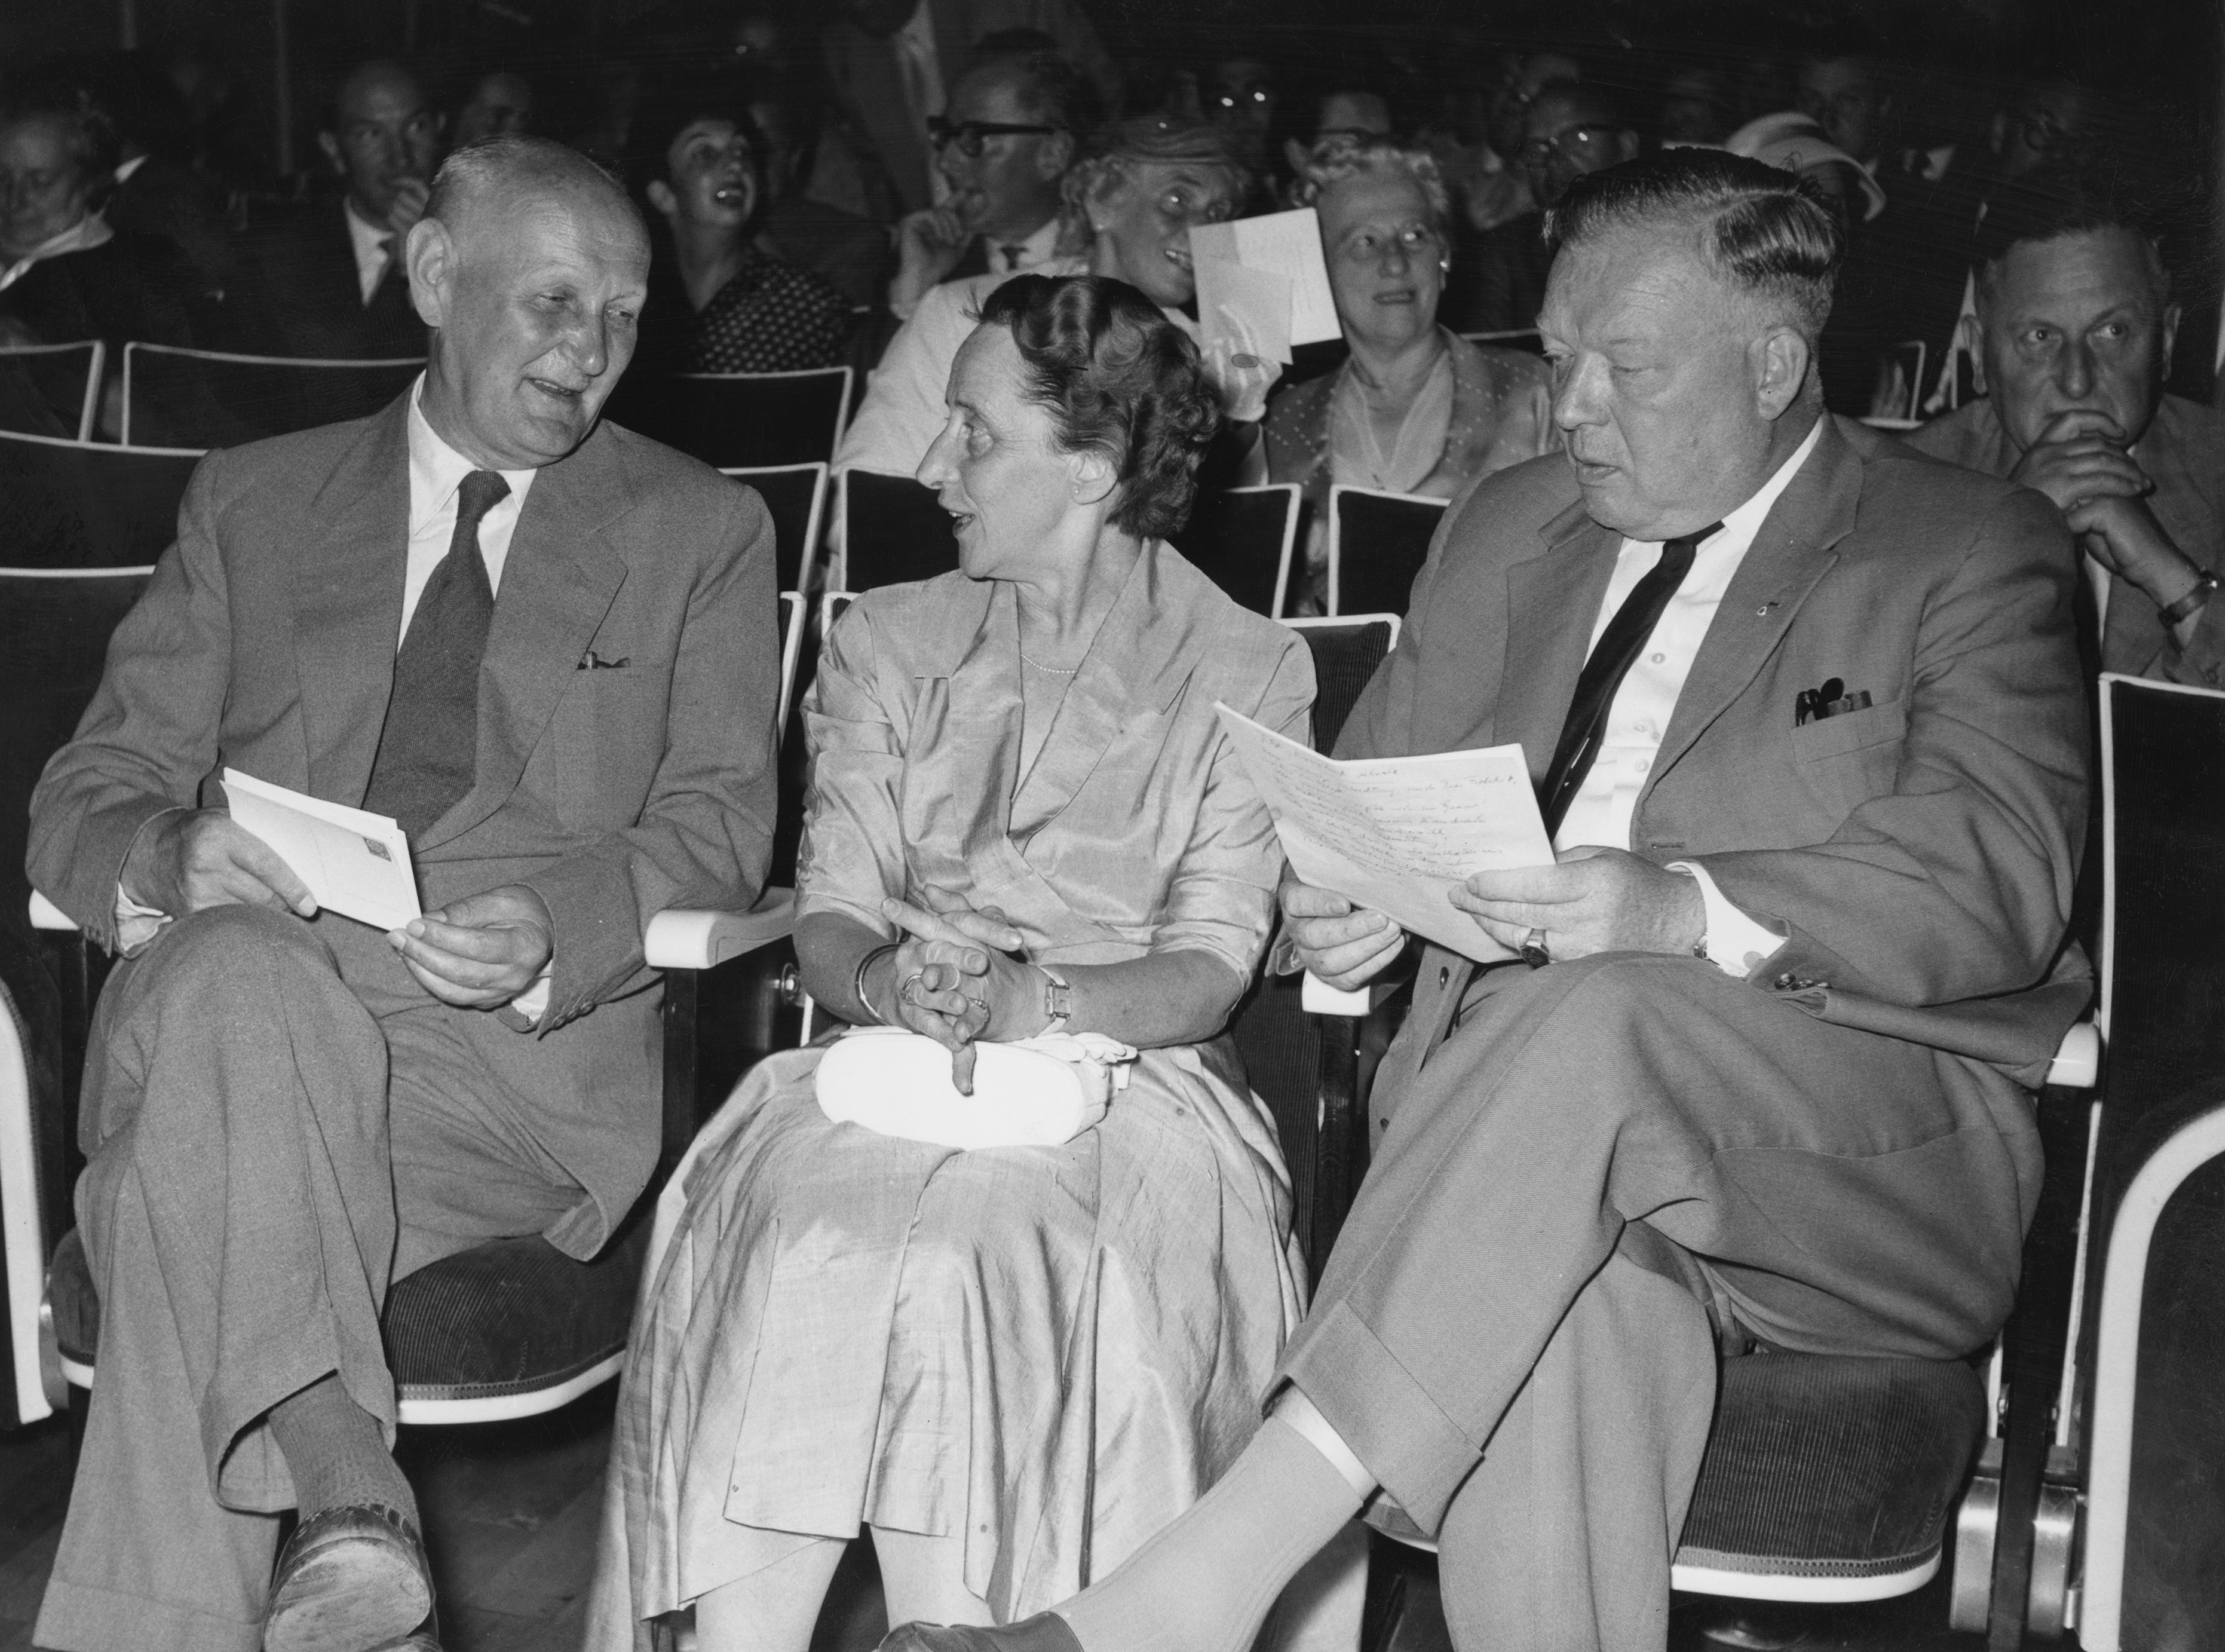 Guests at the 7th meeting of Nobel Prize-winners, Lindau, Germany, 3rd July 1957. On the left is German pathologist Gerhard Domagk (1895 - 1964) and on the right is German doctor Werner Forssmann (1904 - 1979). Behind Forssmann is Swiss chemist Paul Hermann Muller (1899 - 1965). (Photo by Keystone/Hulton Archive/Getty Images)